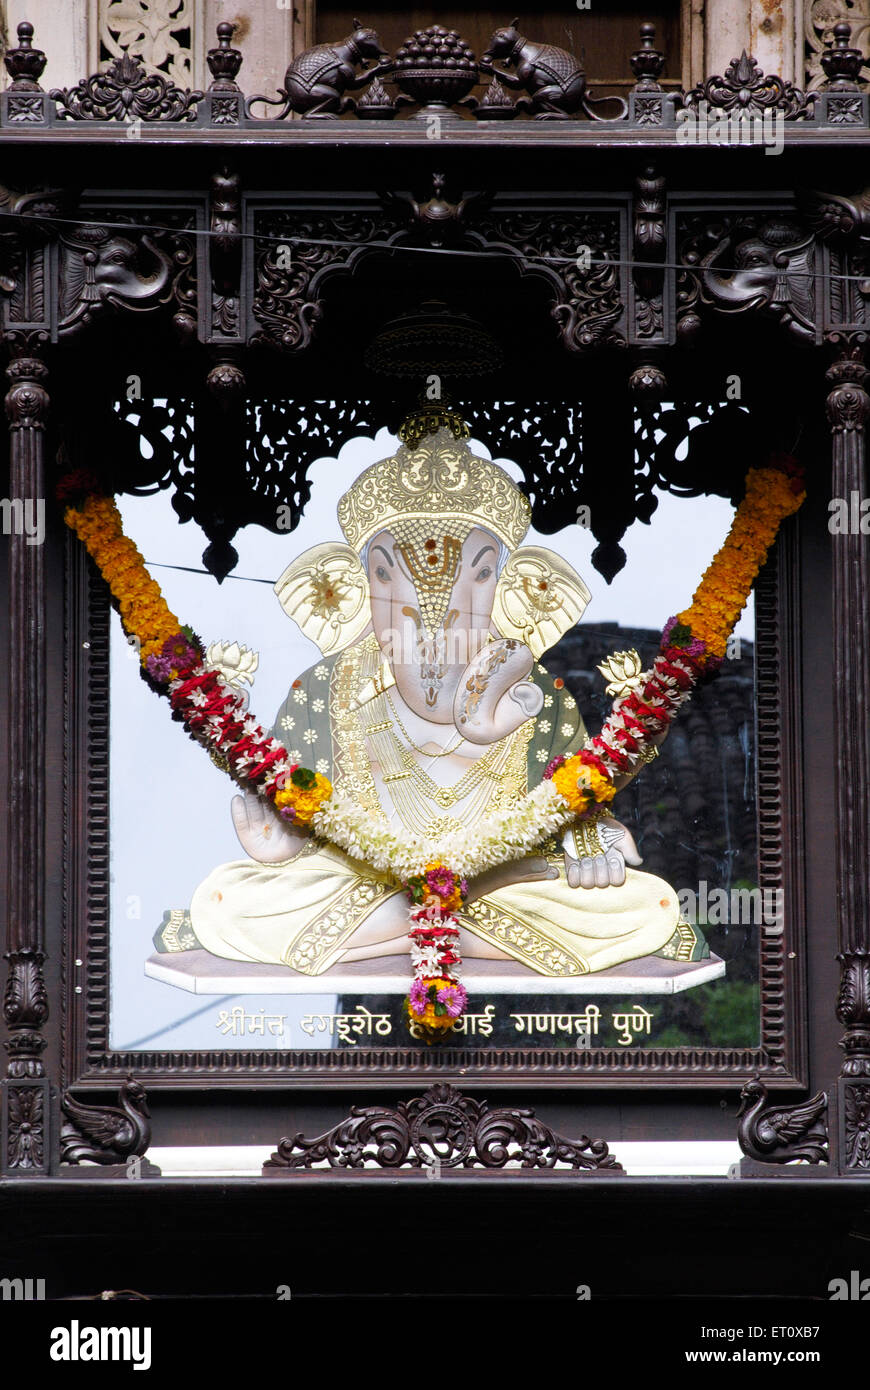 Image of Dagdu Seth Halwai Ganapati made by mirror and glass fitted in wood carved frame year 2008 Ganapati festival - Stock Image